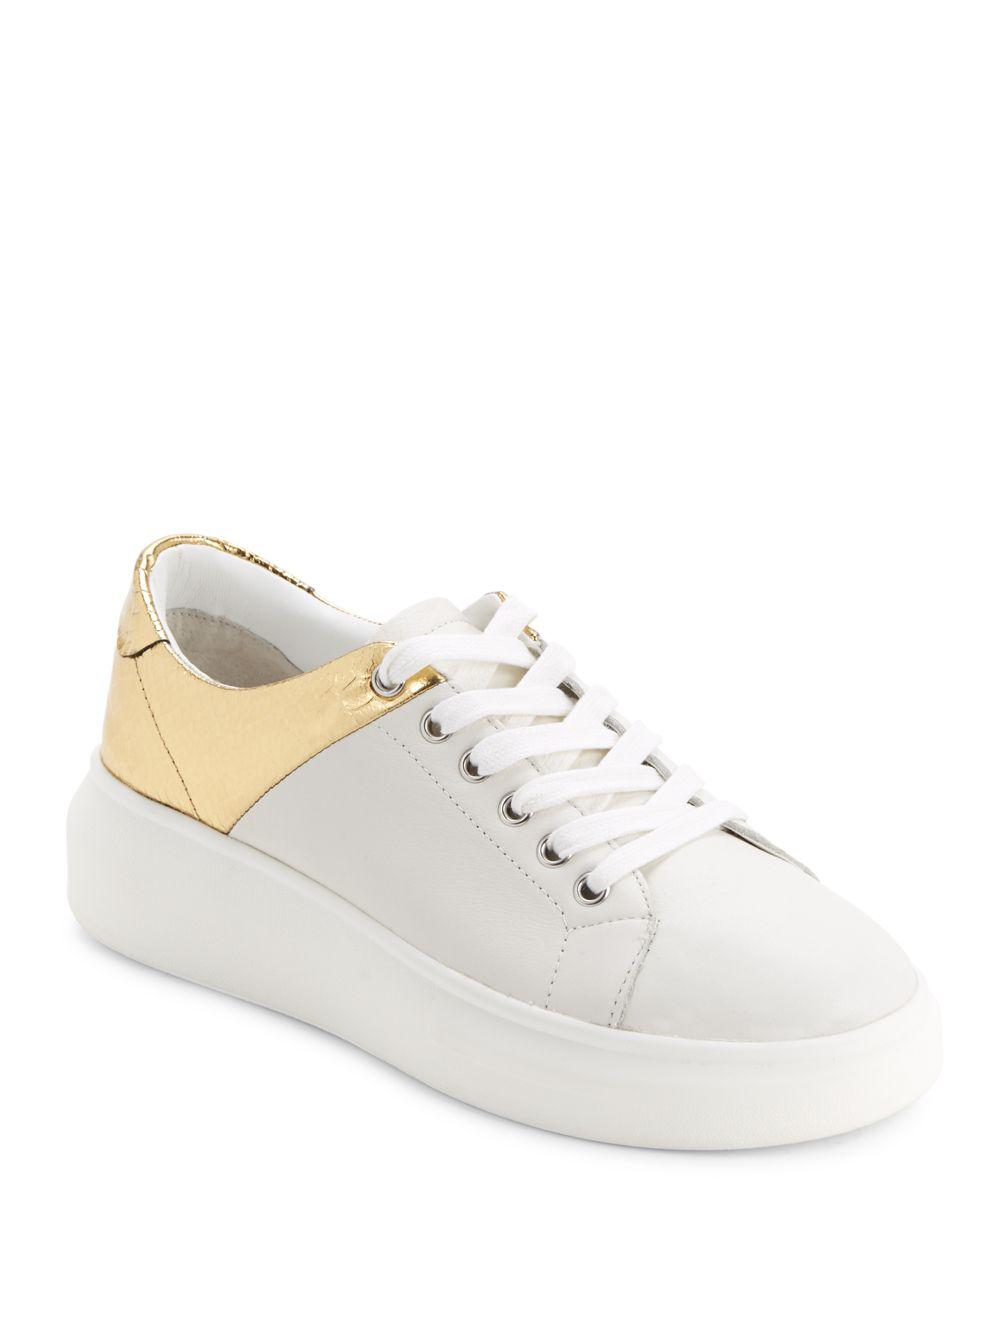 c4d17209c Lyst - J Slides Dania Leather Round-toe Platform Sneakers in White